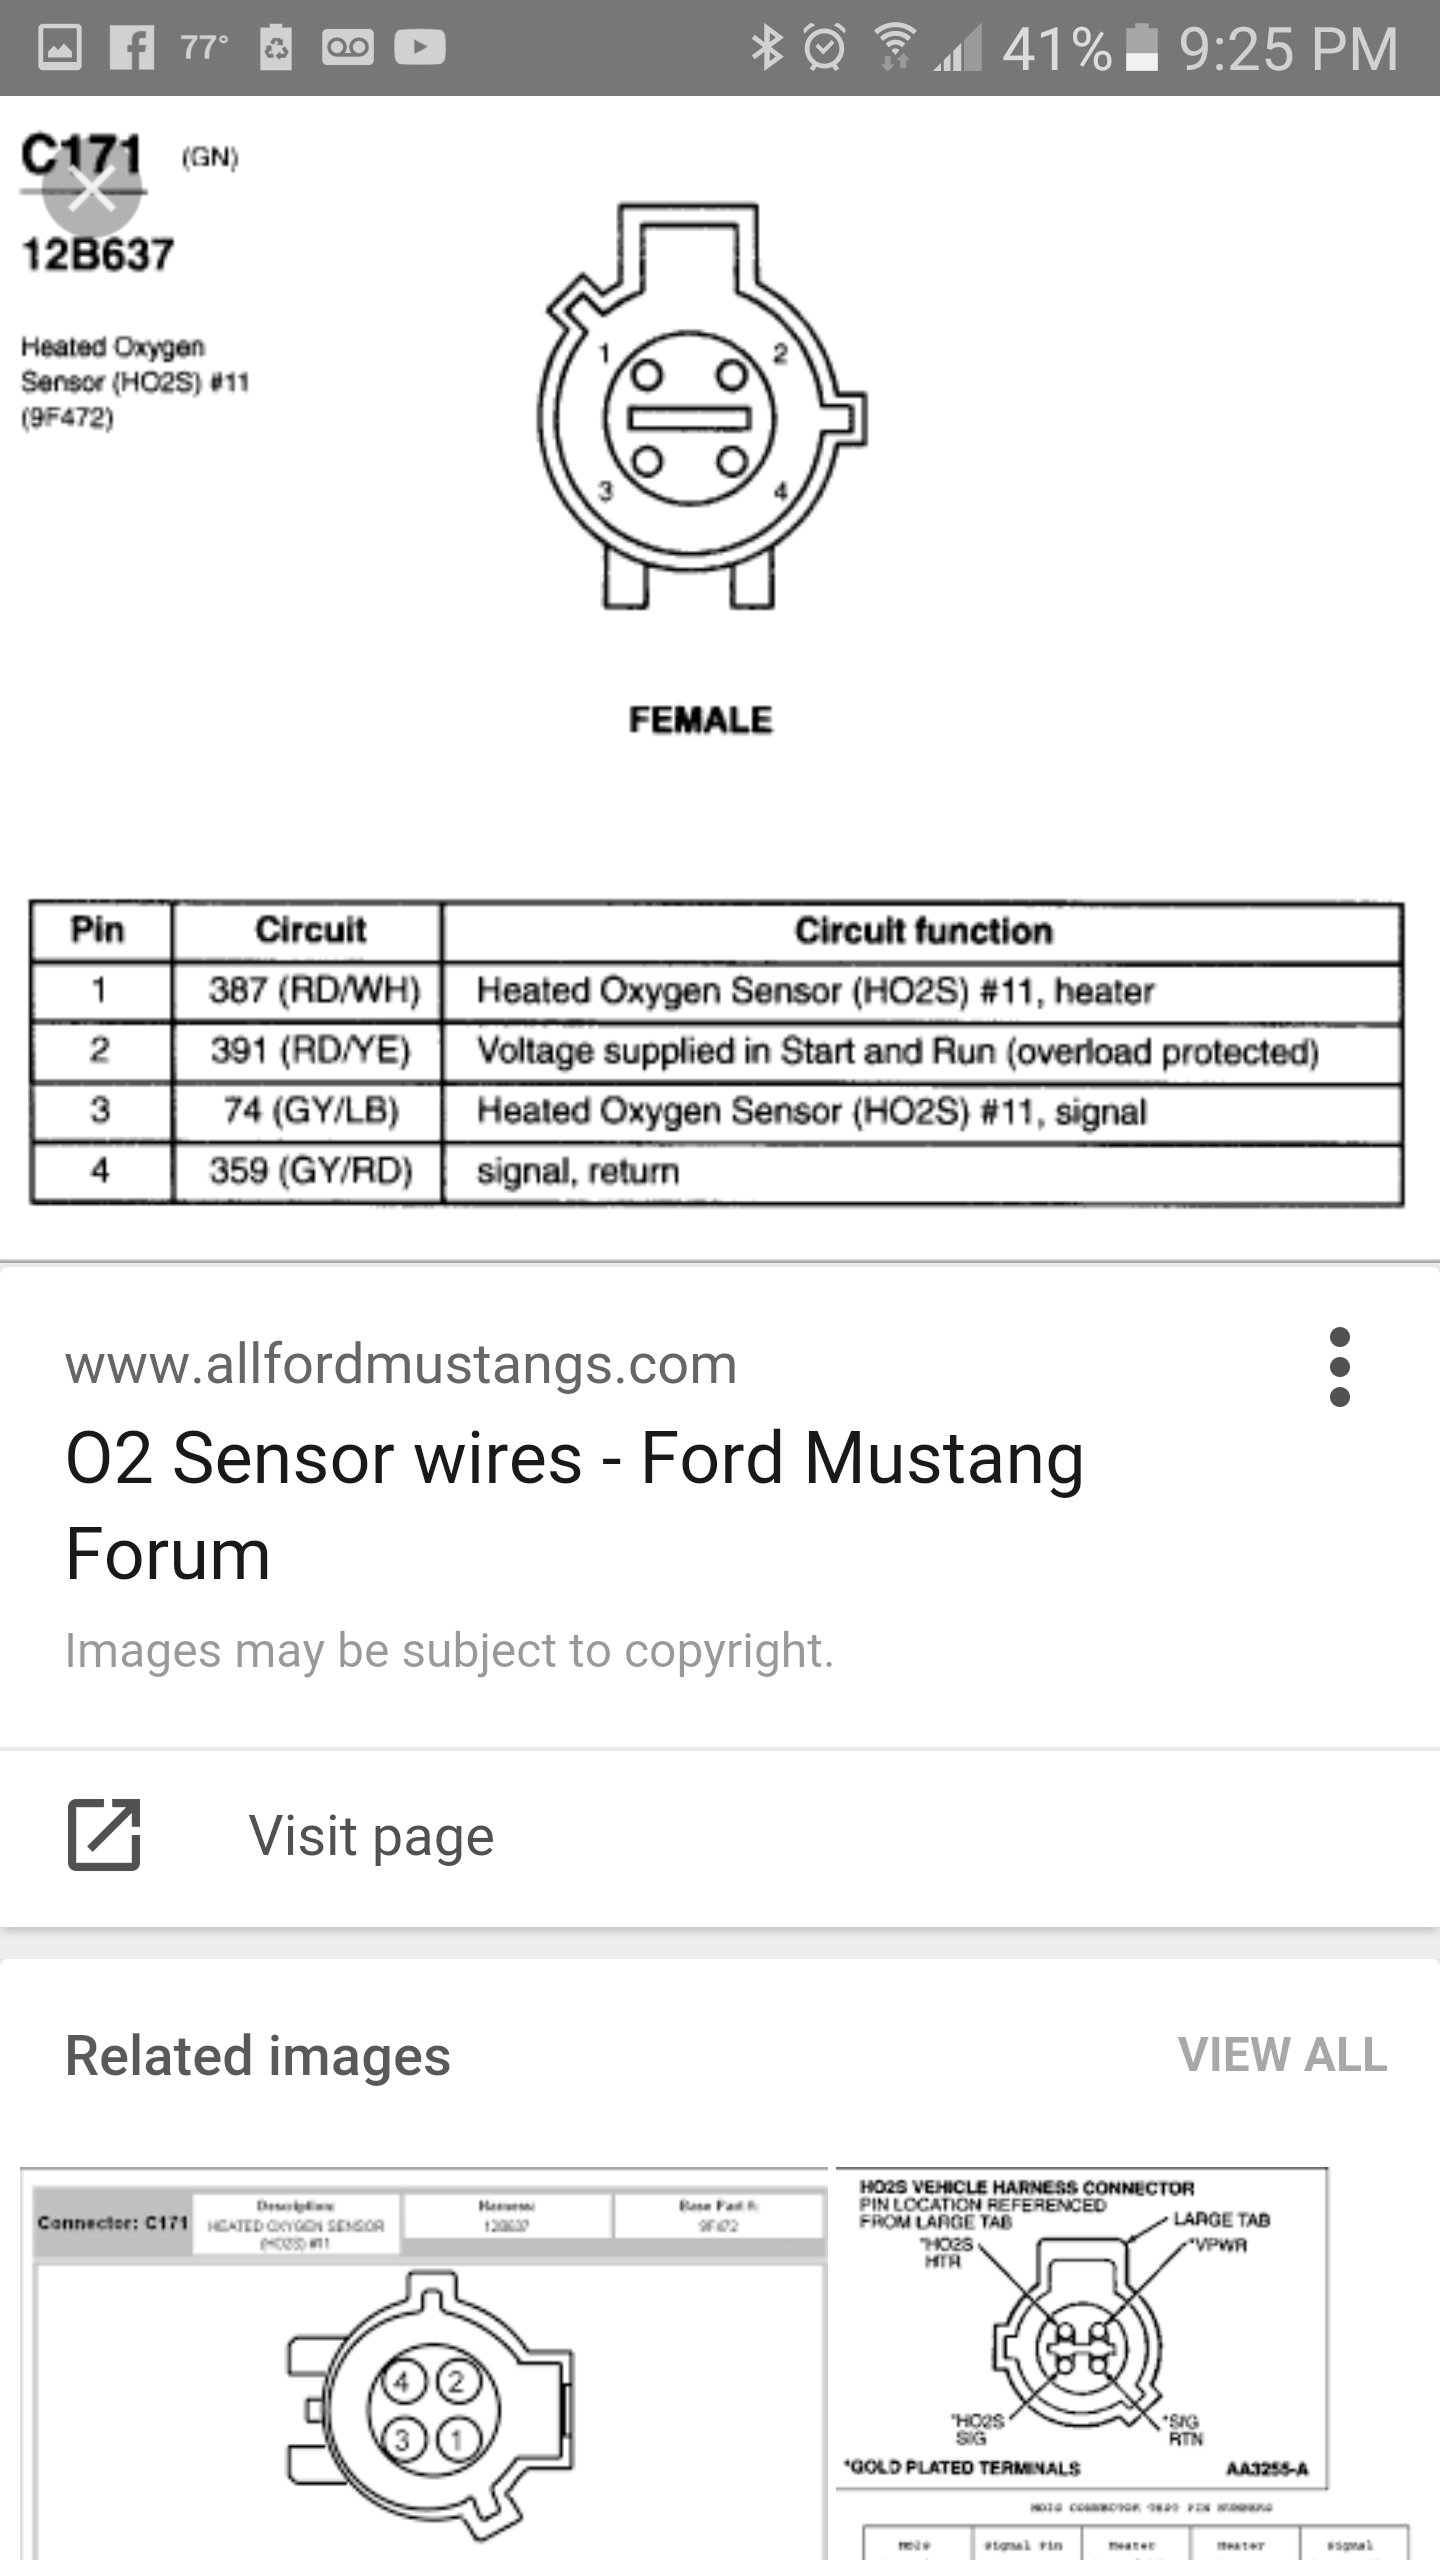 o2 sensor wiring harness wiring diagram nameo2 sensor wiring harness wiring diagram user o2 sensor extension wire harness o2 sensor wiring harness